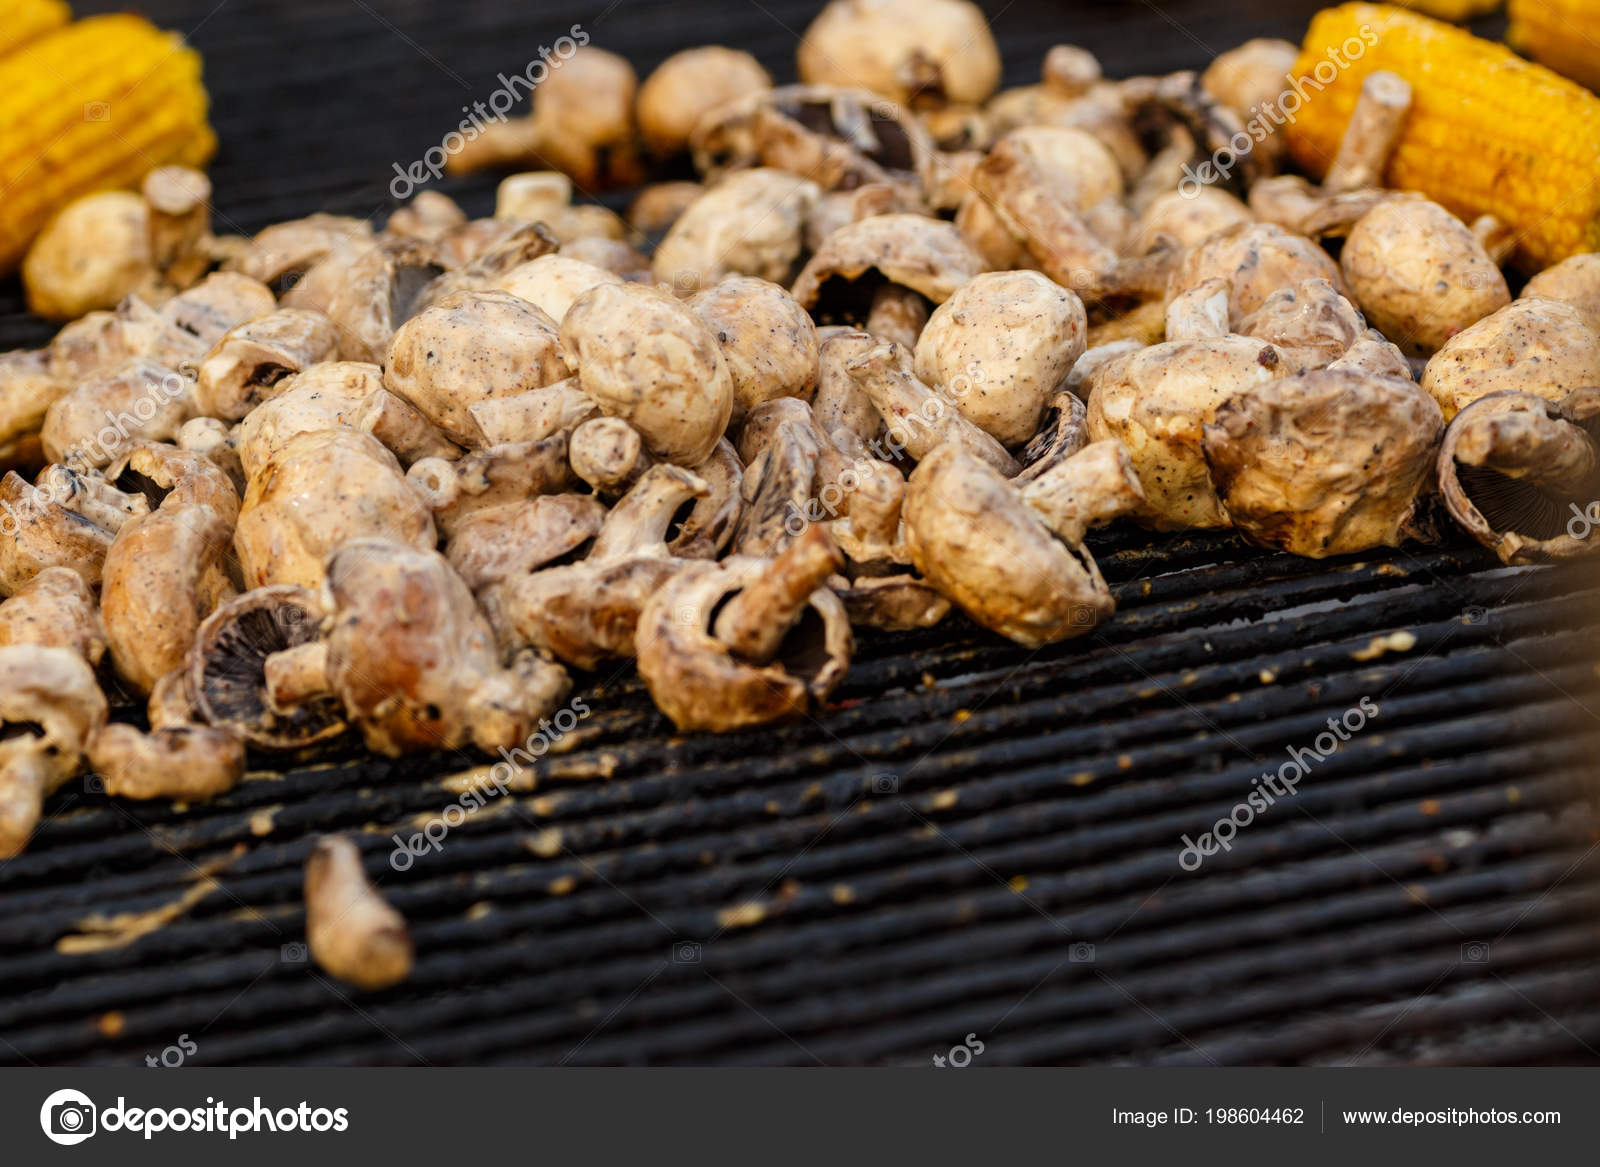 7a80511fcb7a Champignon White Mushrooms Grilled Grill Bbq Steam Cooking Mushrooms Grill  — Stock Photo